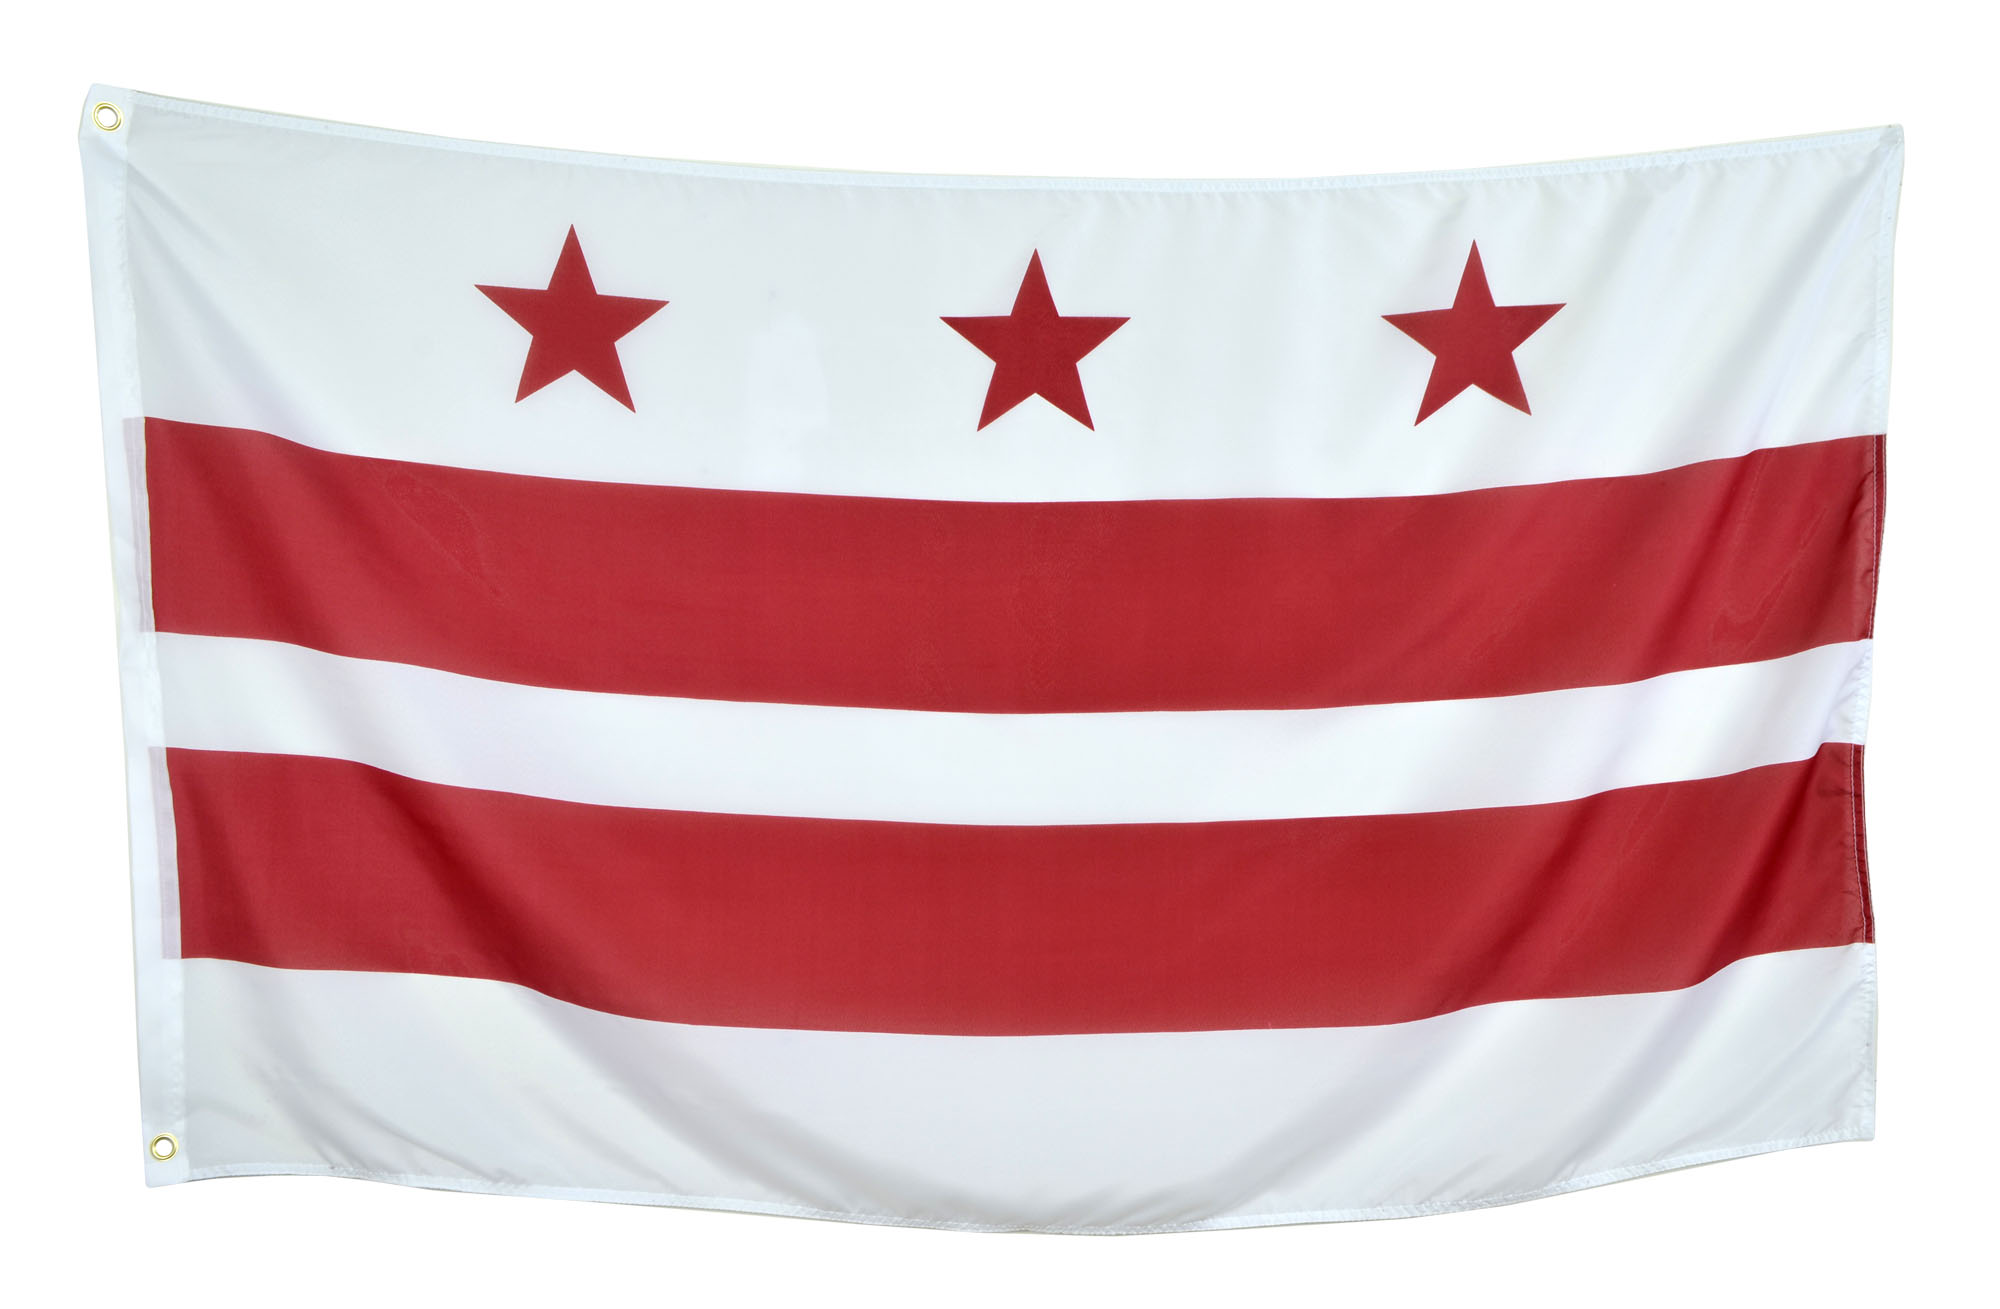 Shop72 US Washington DC Flags - Washington Flag - 3x5' Flag from Sturdy 100D Polyester - Canvas Header Brass Grommets Double Stitched from Wind Sid